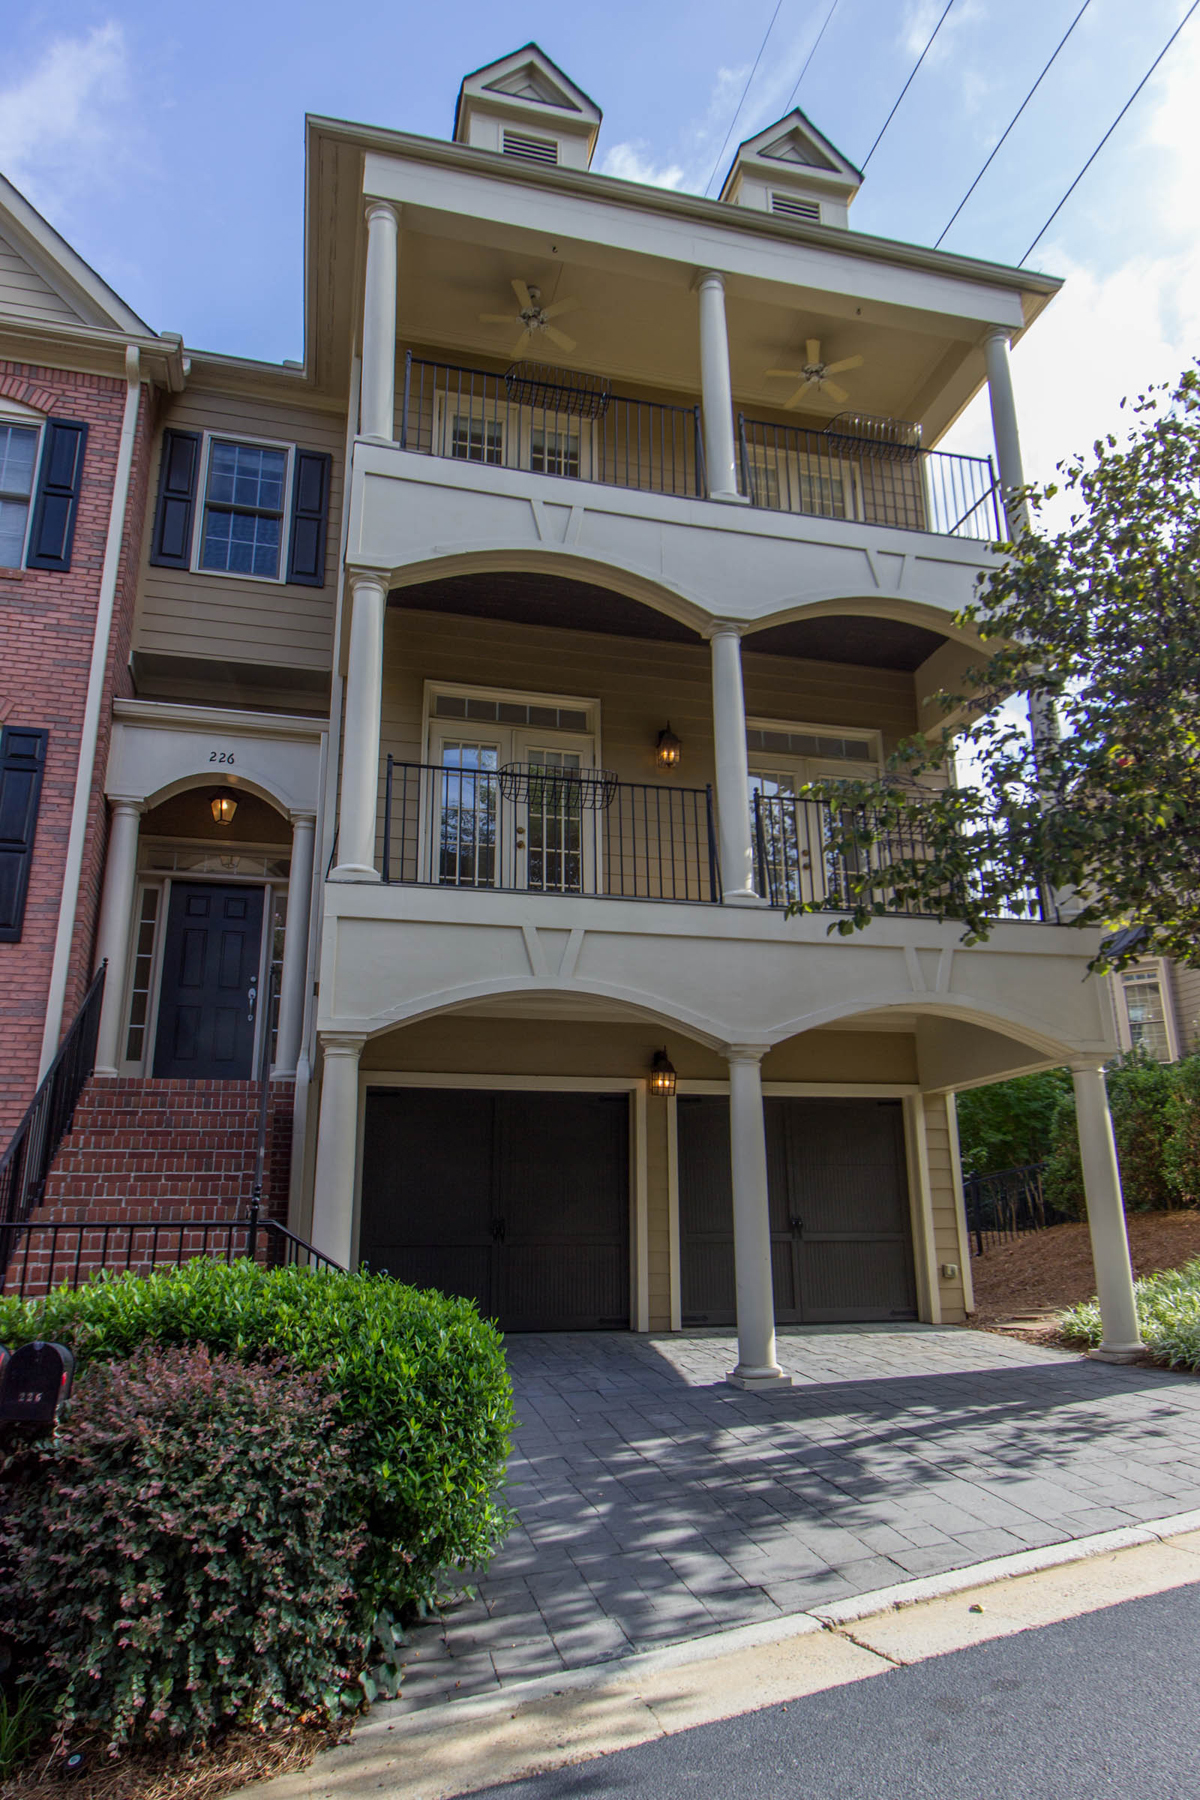 Moradia em banda para Venda às Elegant Three Story Townhome 226 Meeting Lane Atlanta, Geórgia, 30342 Estados Unidos